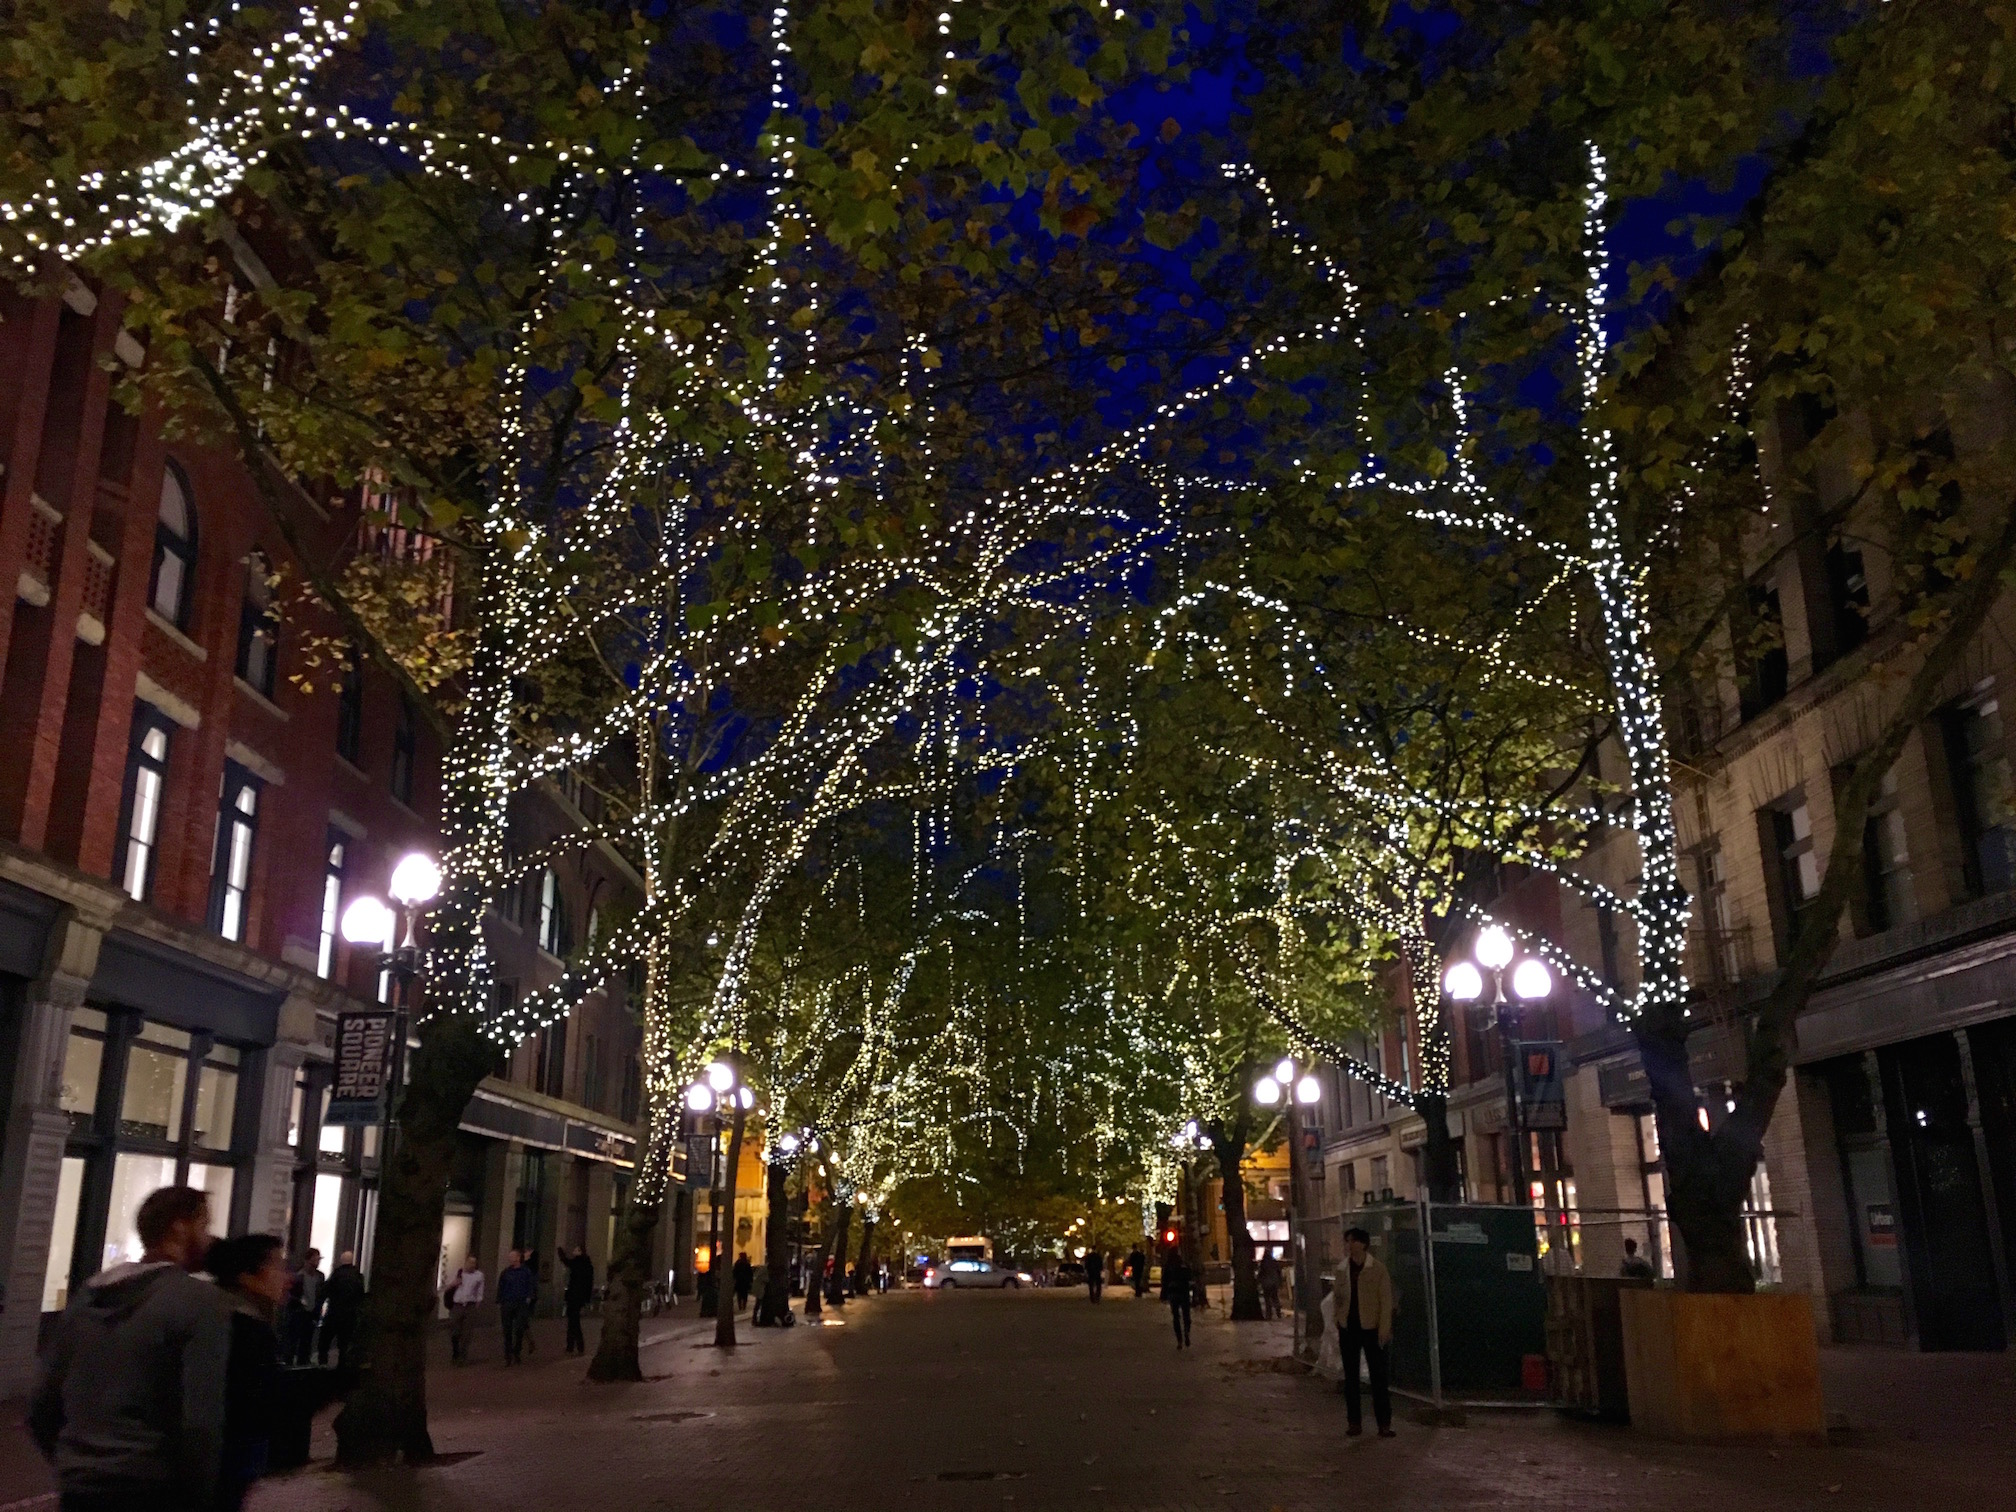 Pioneer Square at night